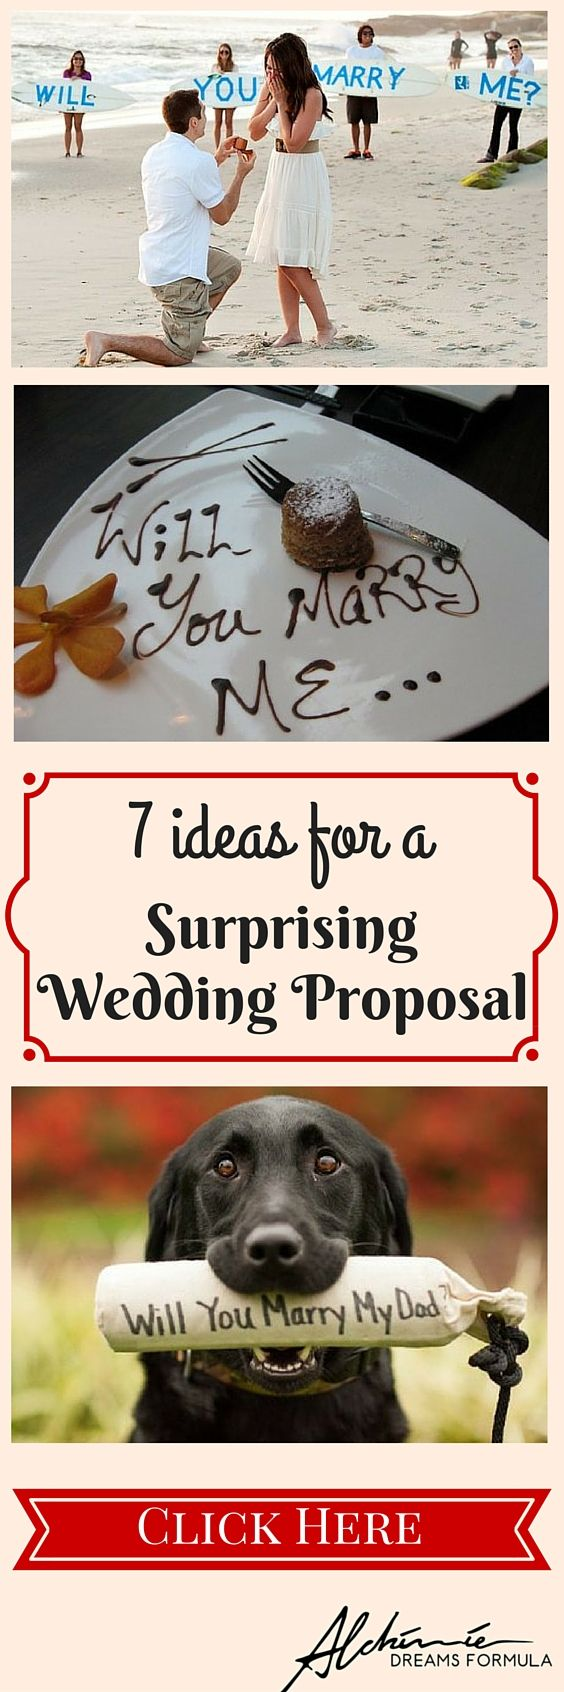 Wedding Proposal: When Everything Begins